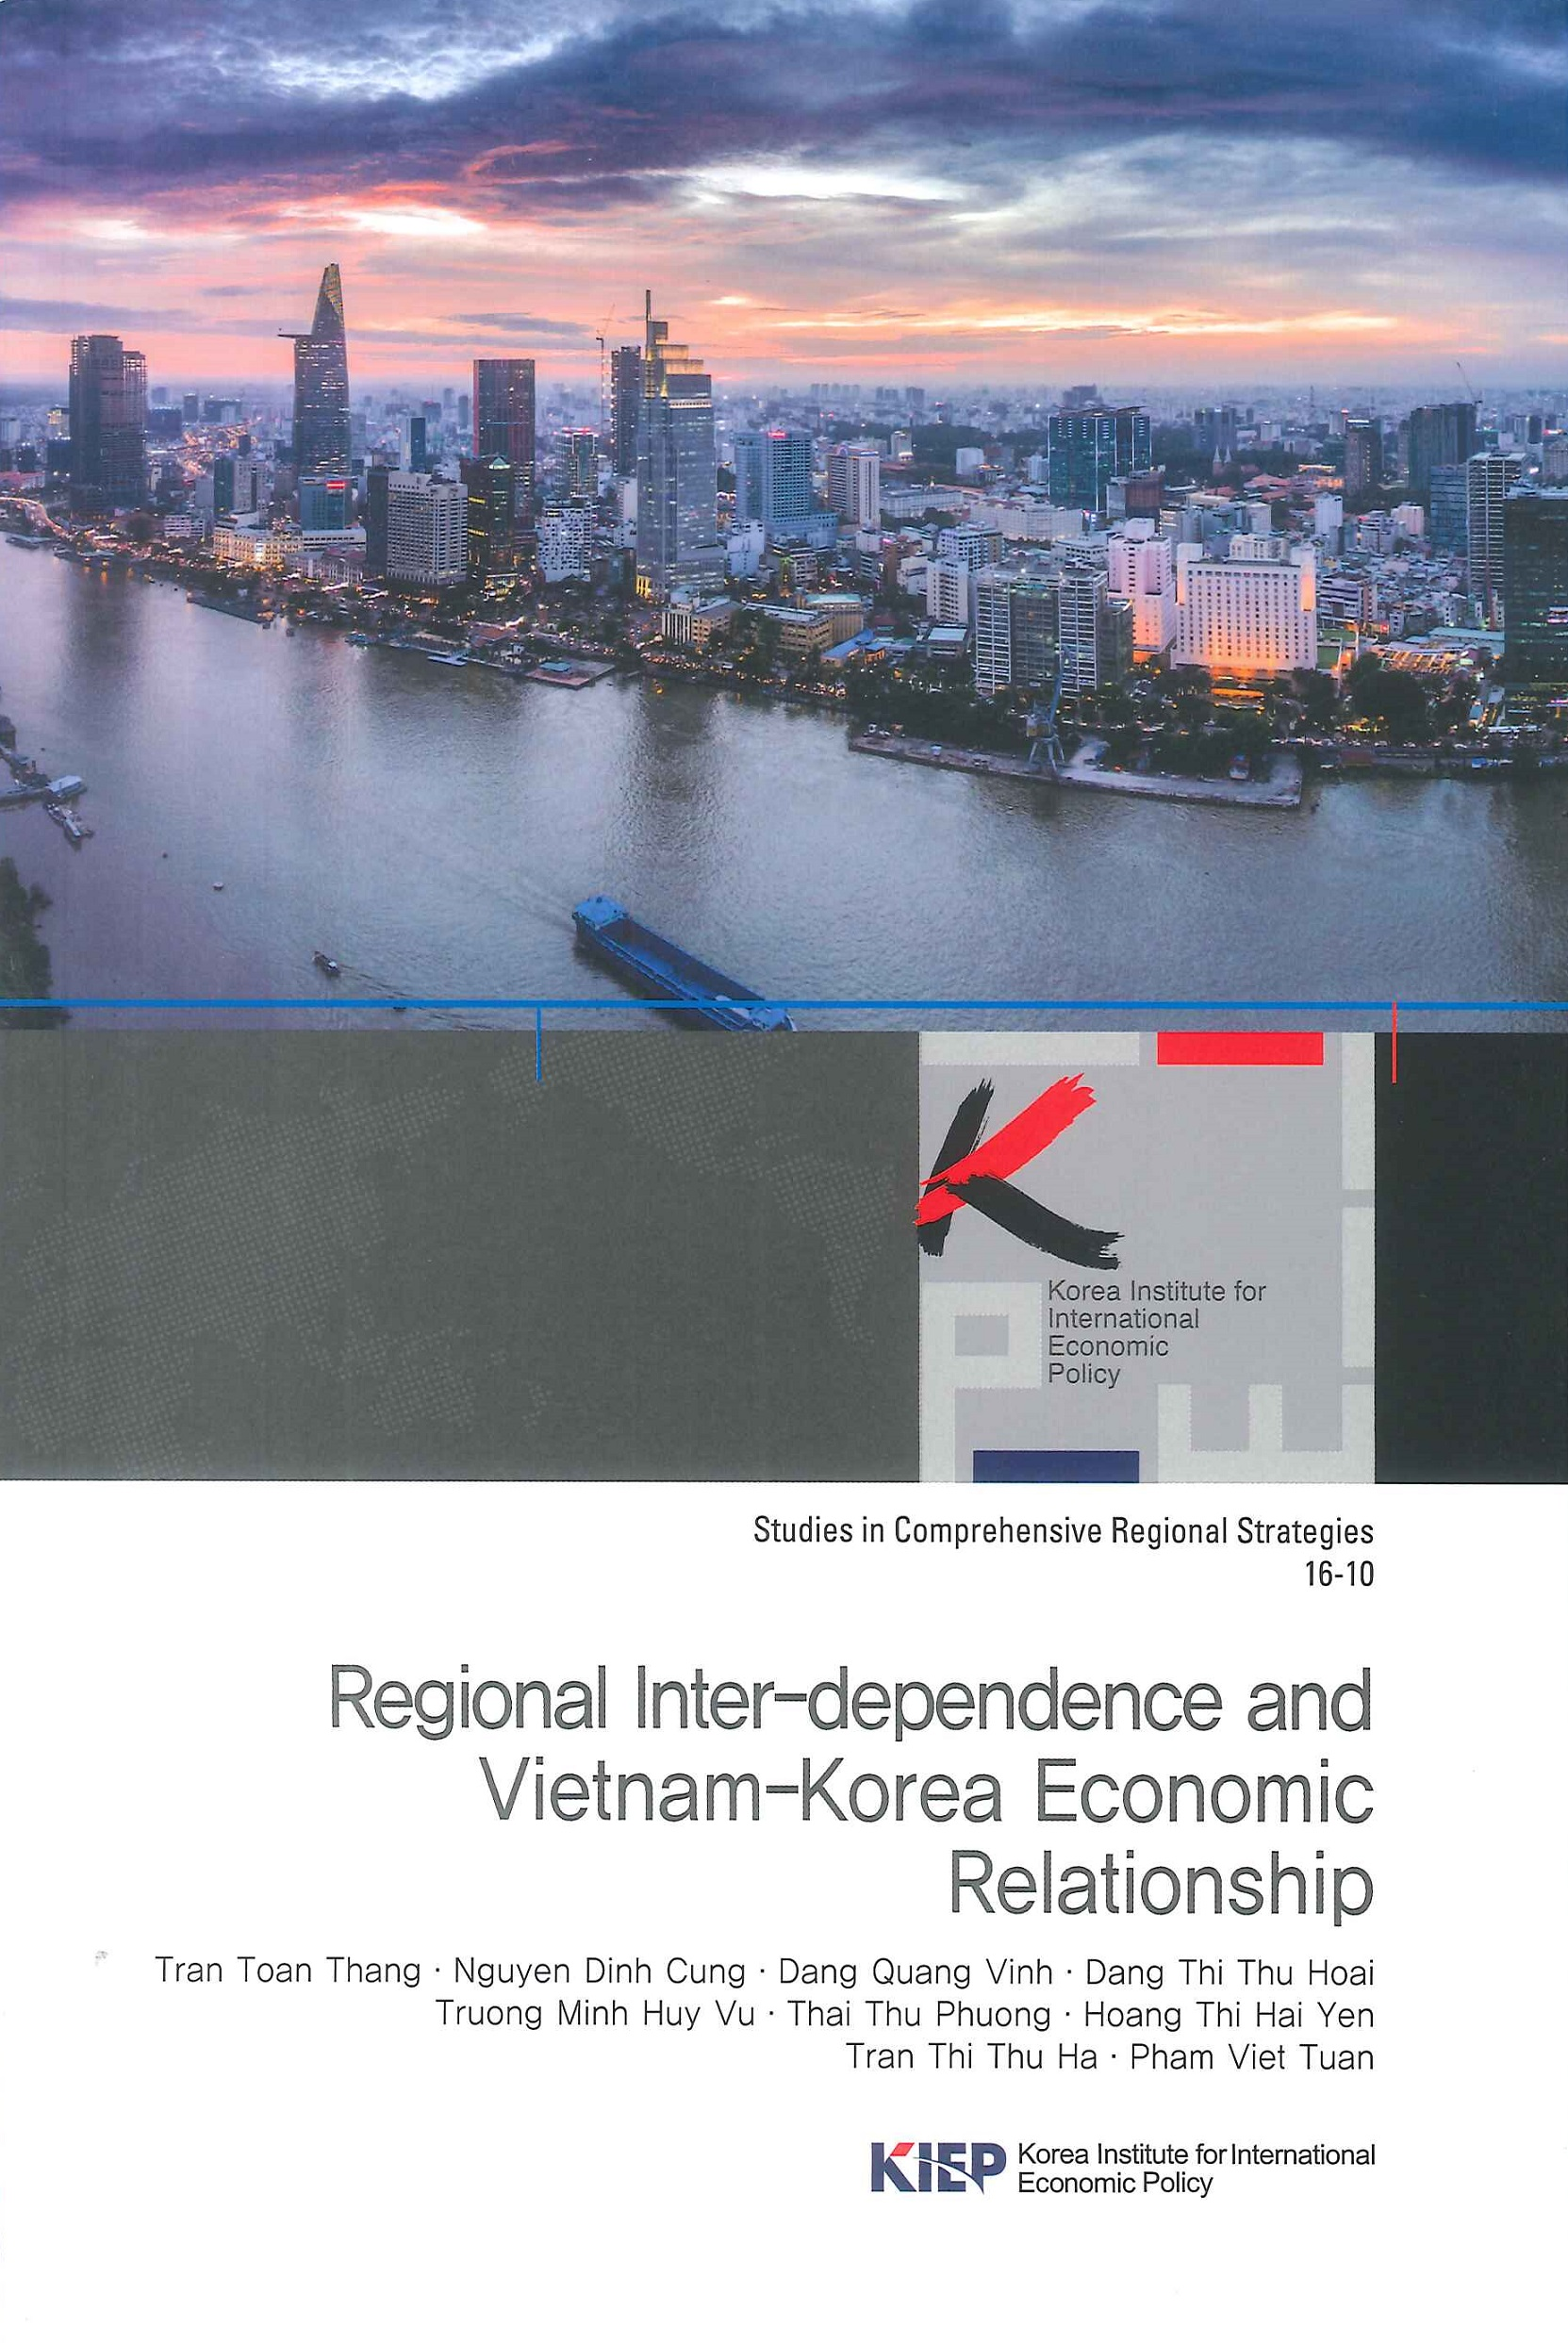 Regional inter-dependence and Vietnam-Korea economic relationship